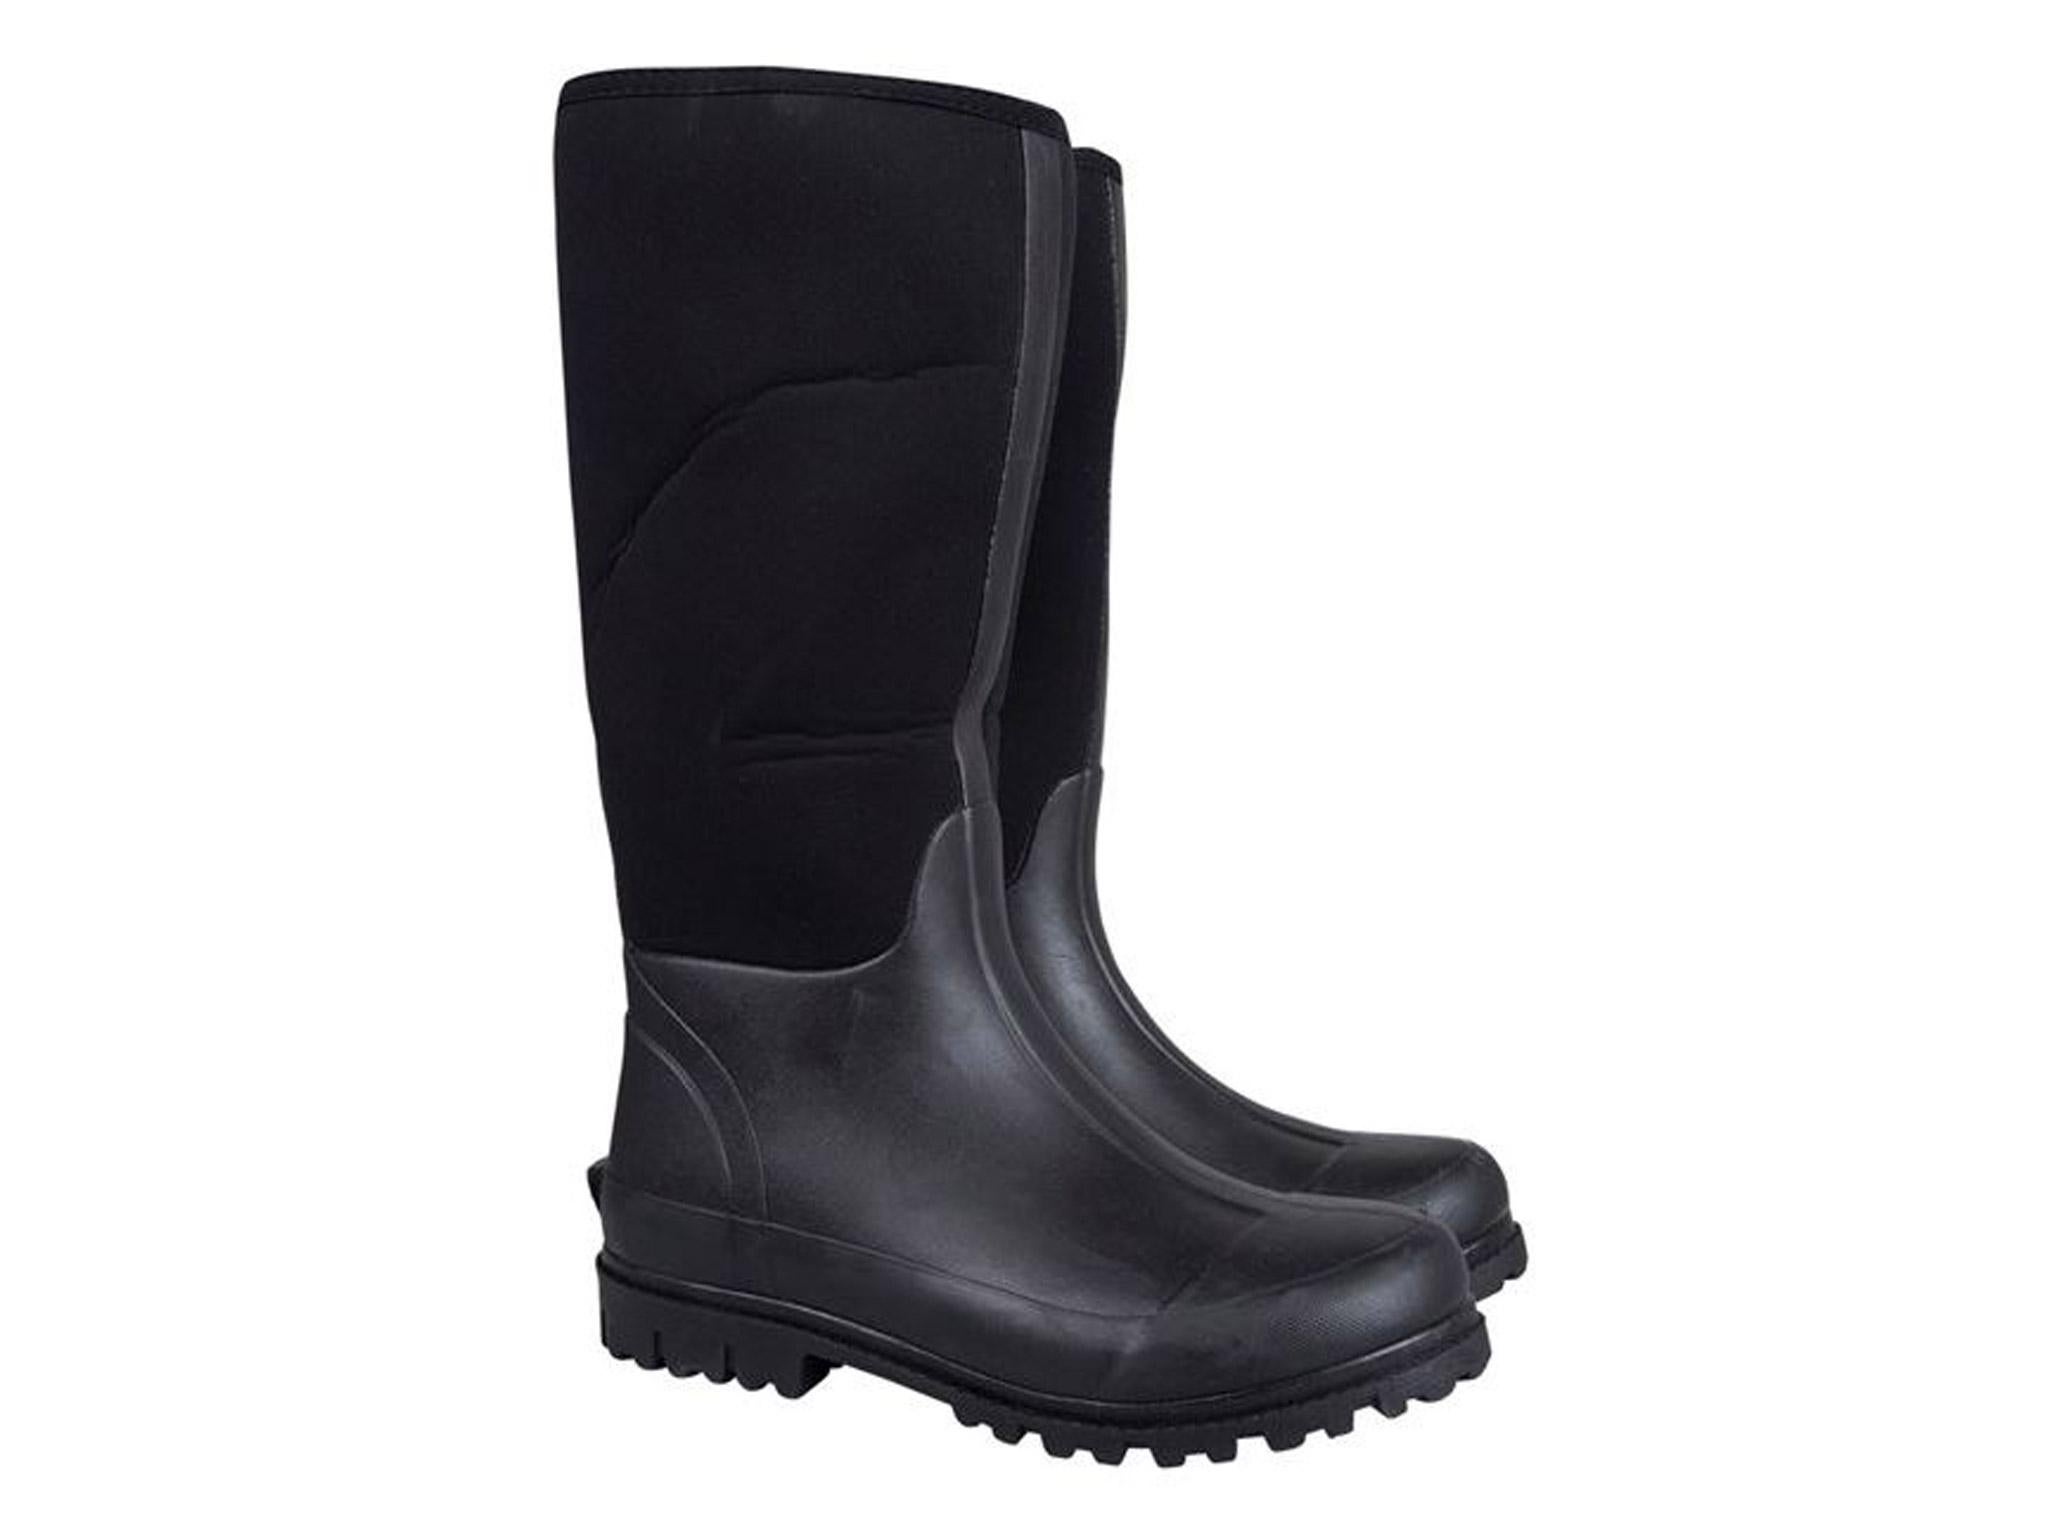 Muck boots dating services